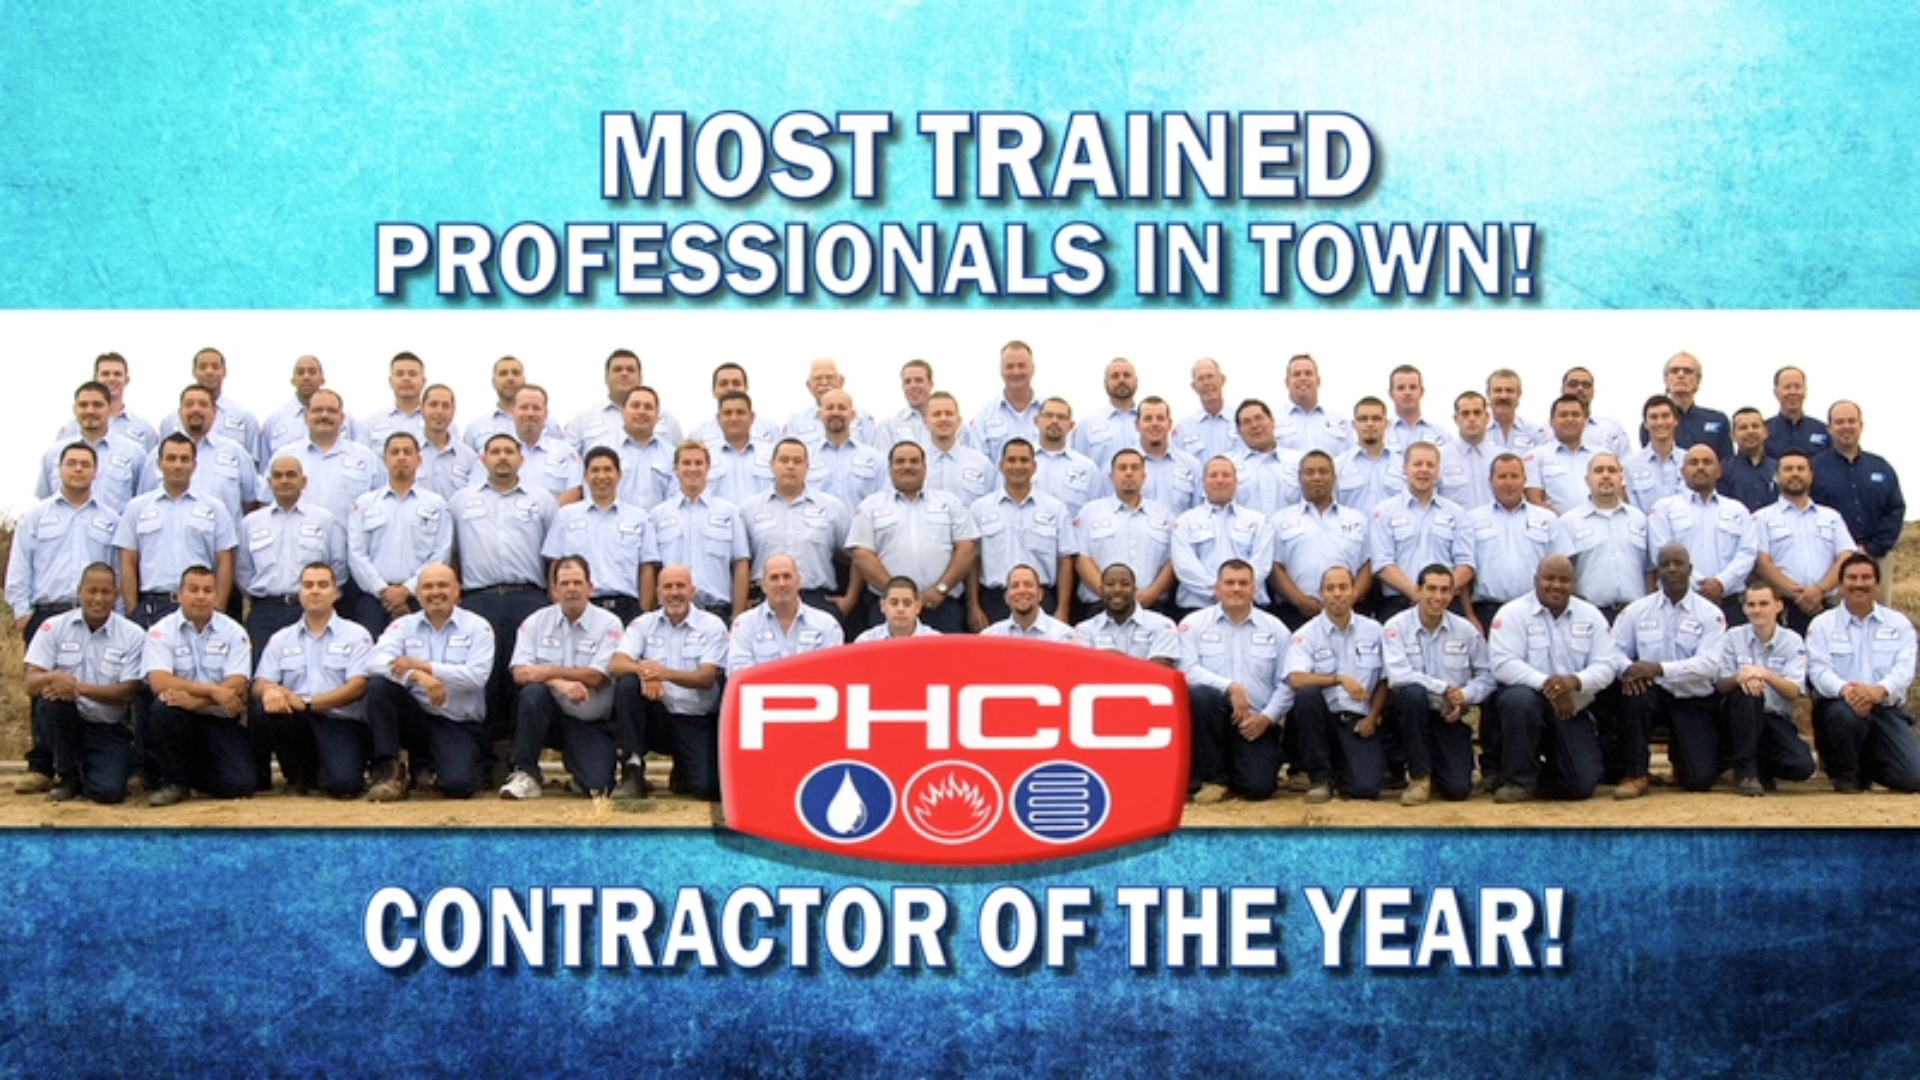 Bill Howe Plumbing, Heating & Air, Restoration & Flood Services Coupons near me in San Diego ...